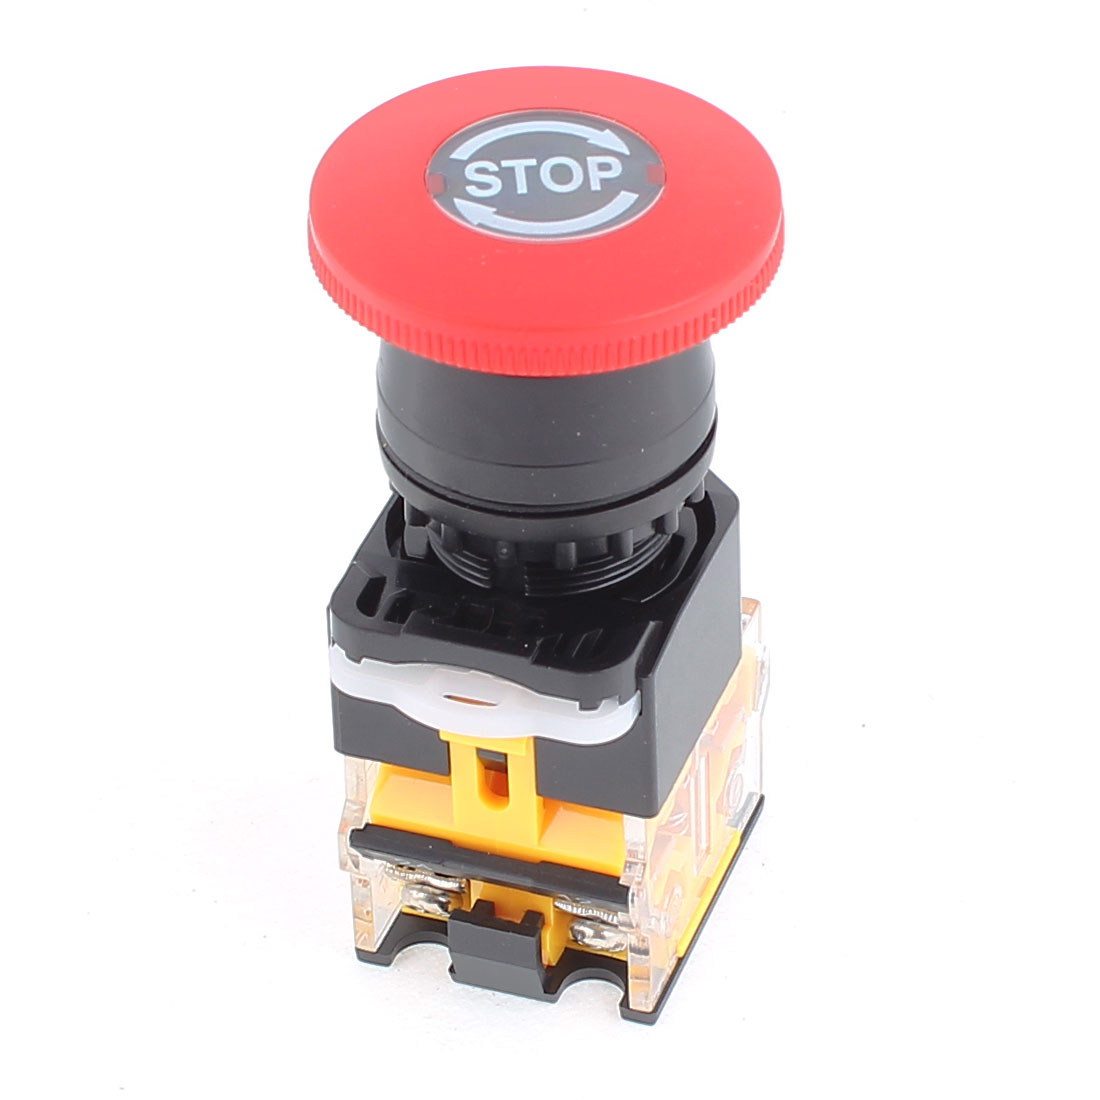 400V 10A DPST 4 Screw Terminals Emergency Stop Red Mushroom Push Button Switch